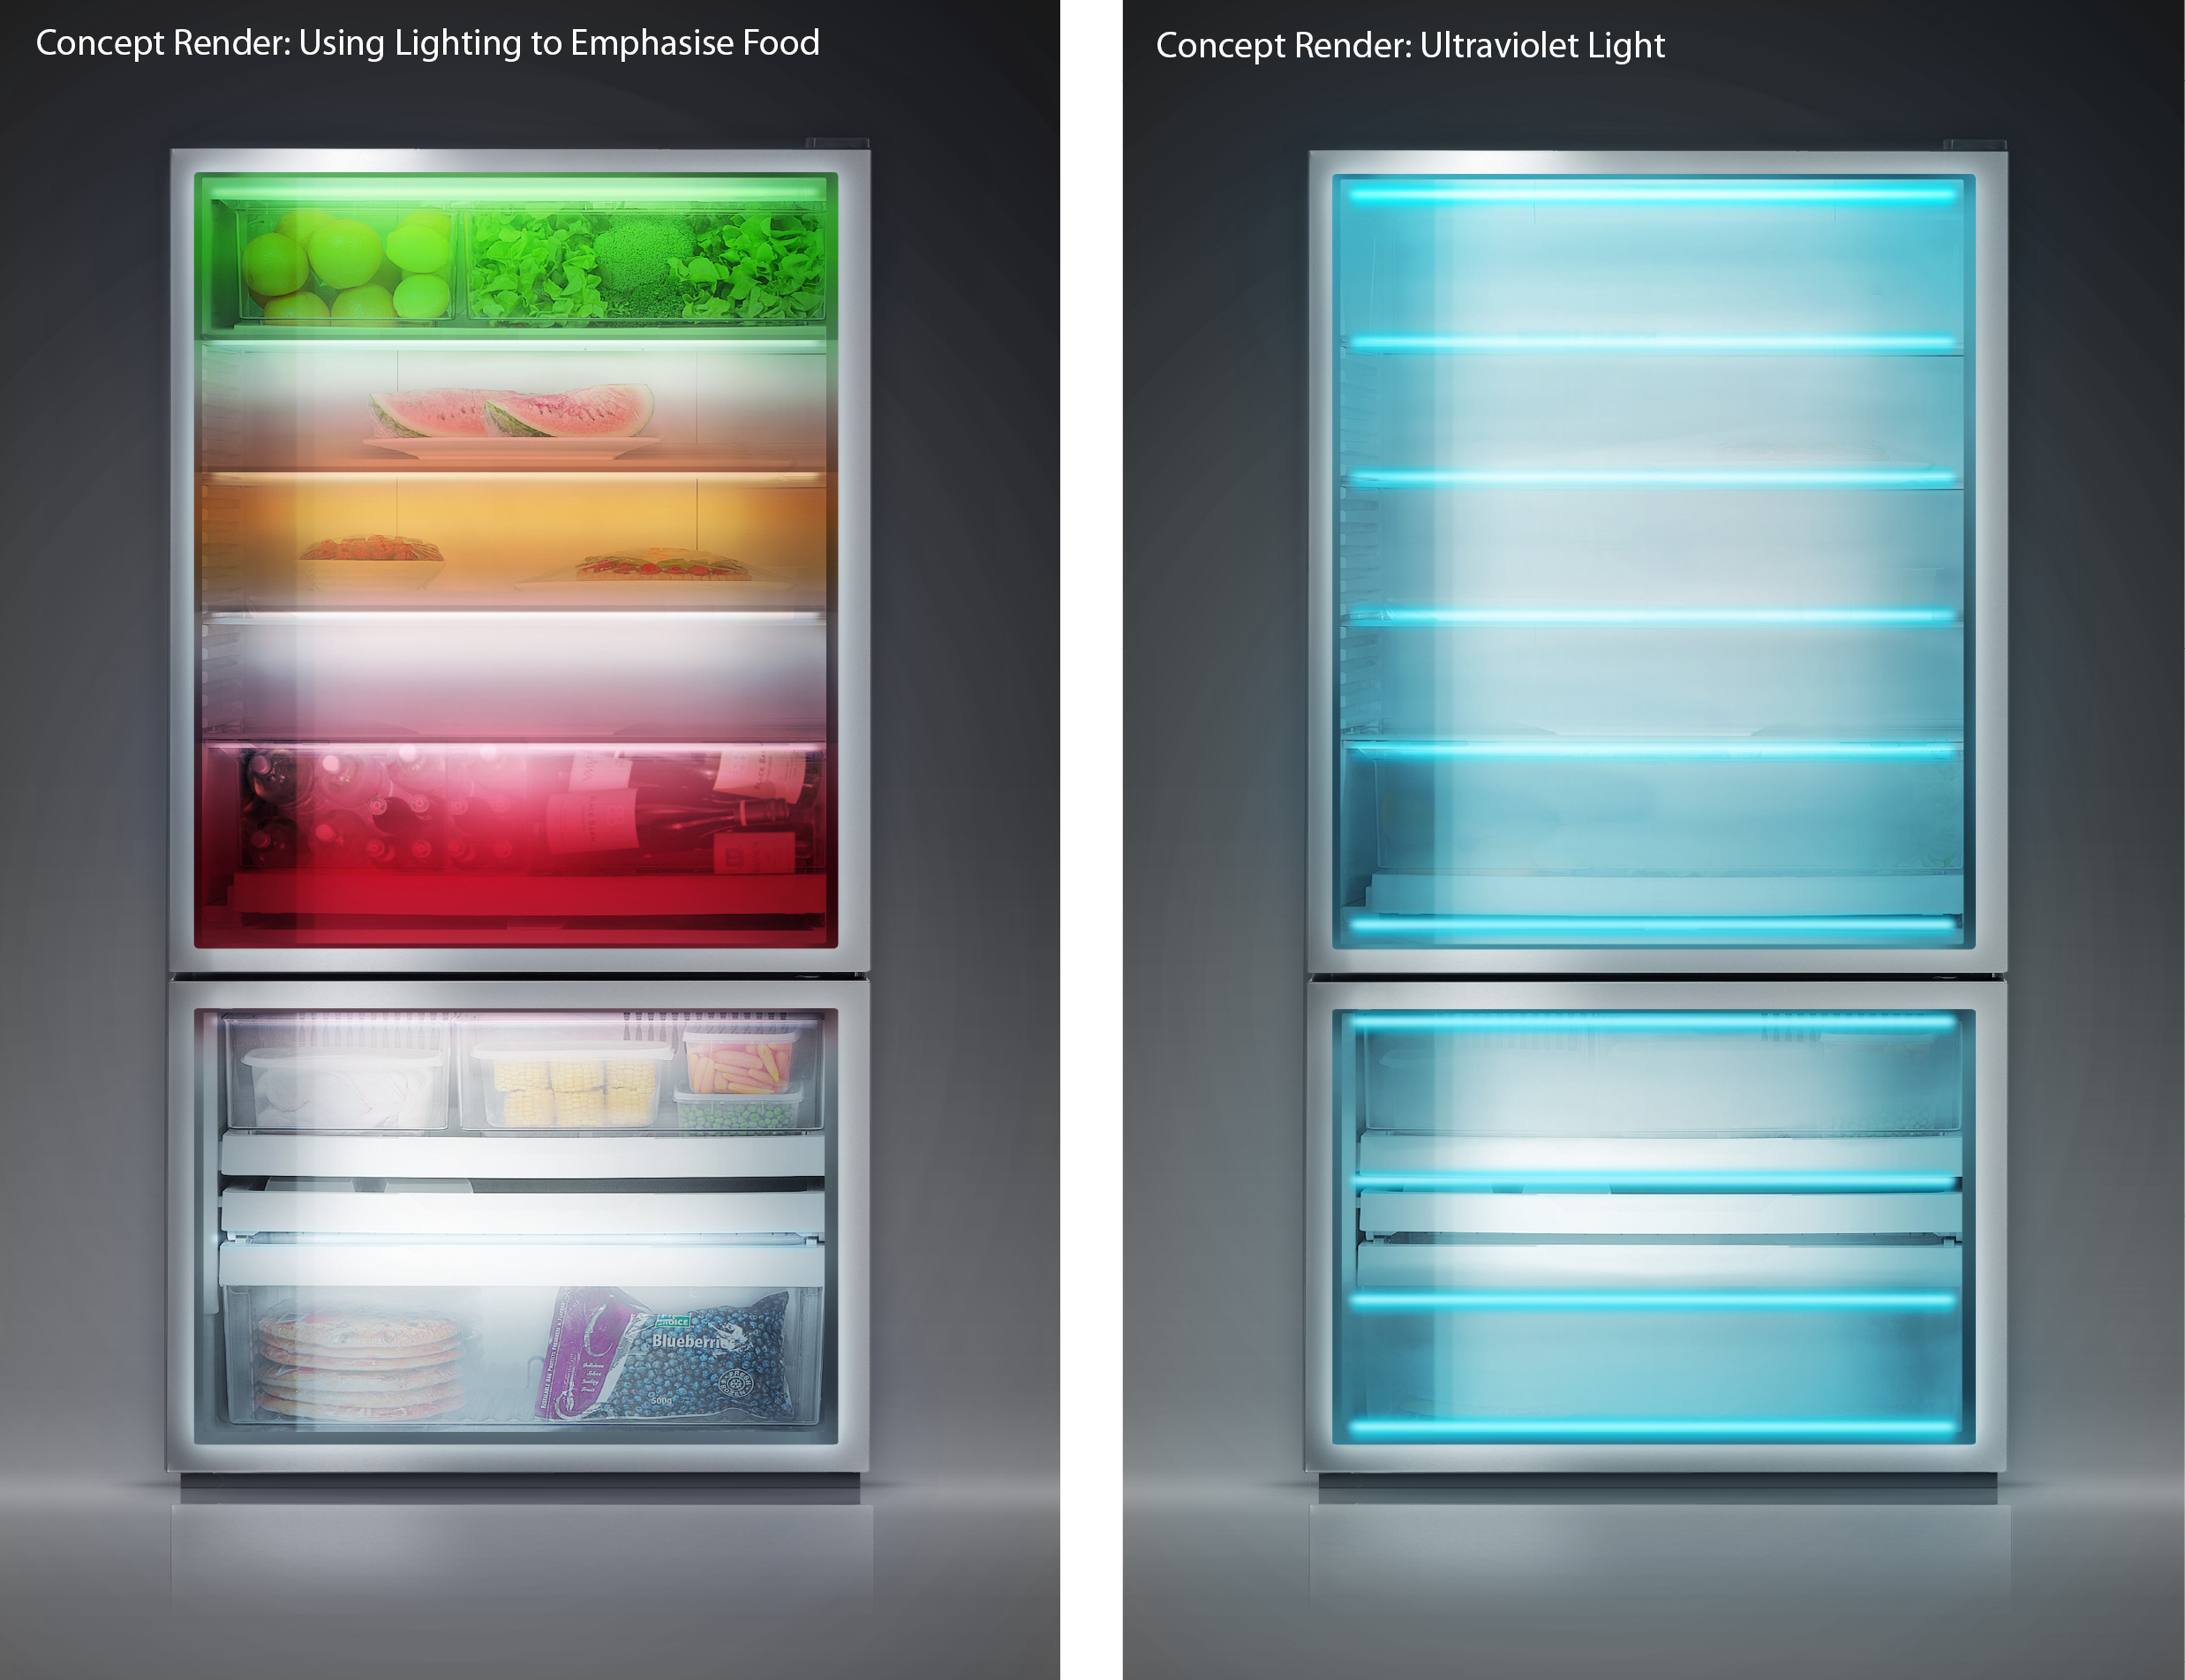 Uncategorized Future Kitchen Appliances future appliances fridge of the predicts we will be lazy project a forecasting focused on revaluating whiteware lighting identifying technology that could applied to kit